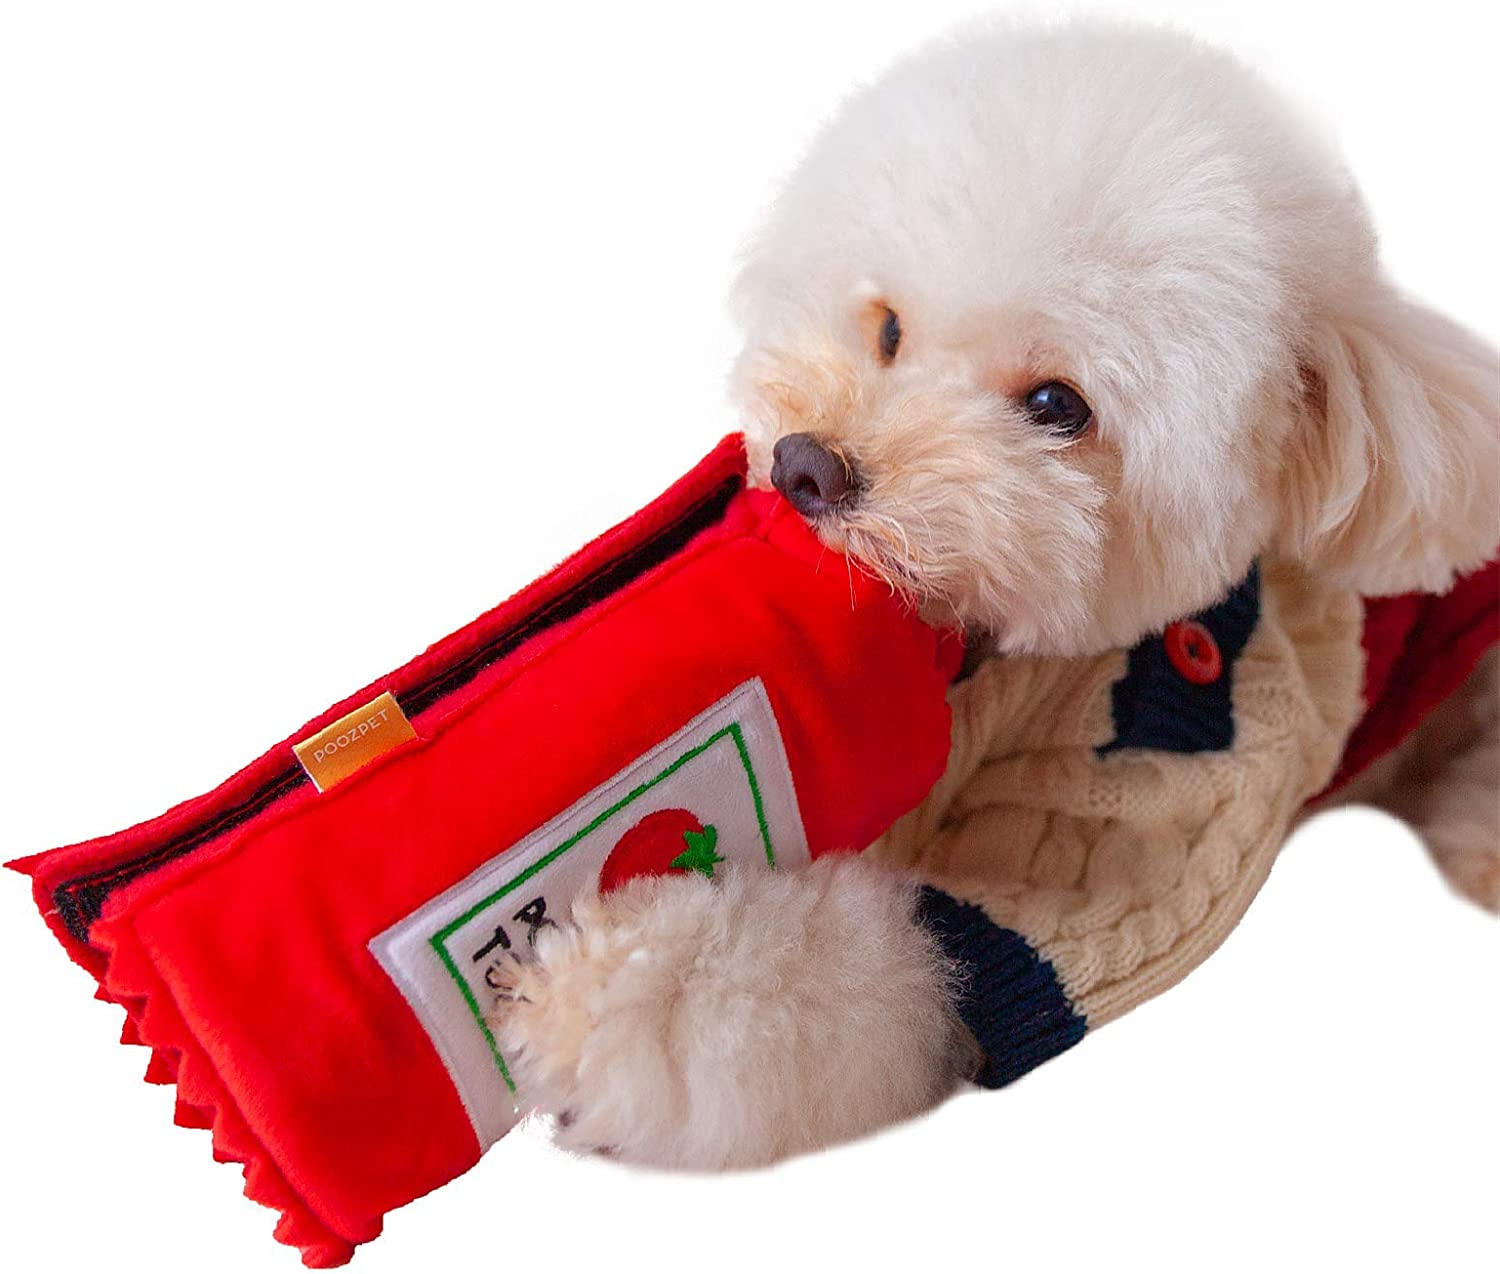 Dog Deluxe Puzzle Toys,Suitable for Small Medium Sized Dogs,Thr and Popular